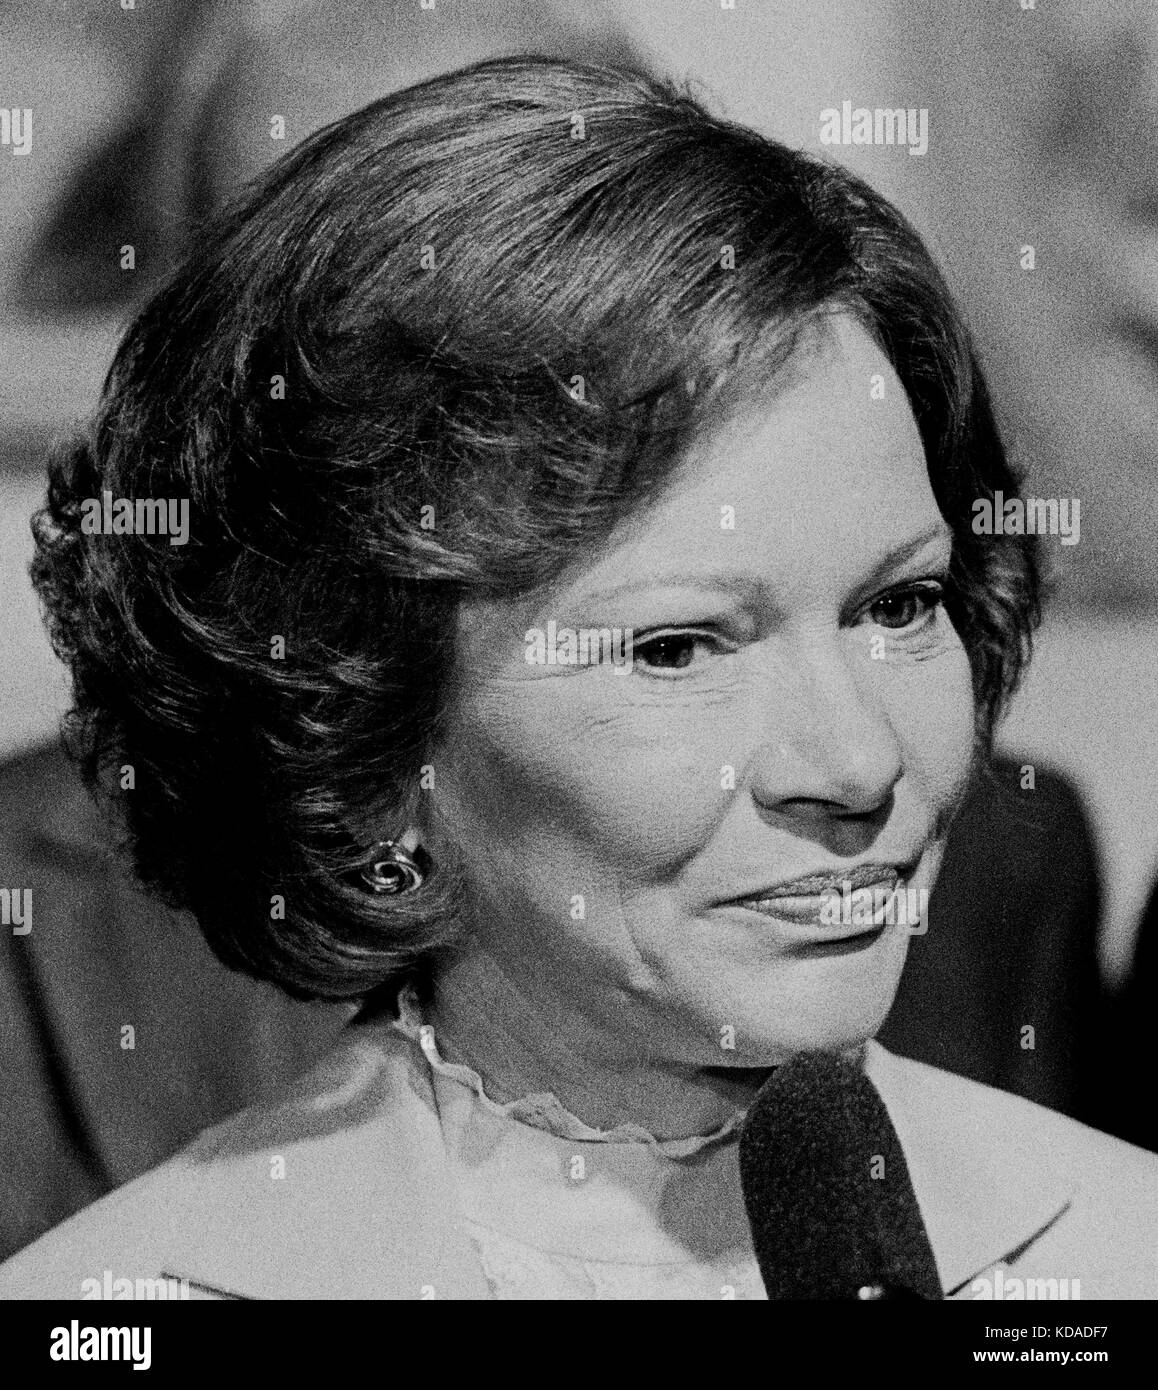 first lady, Rosalynn Carter, speaking in San Francisco, California - Stock Image